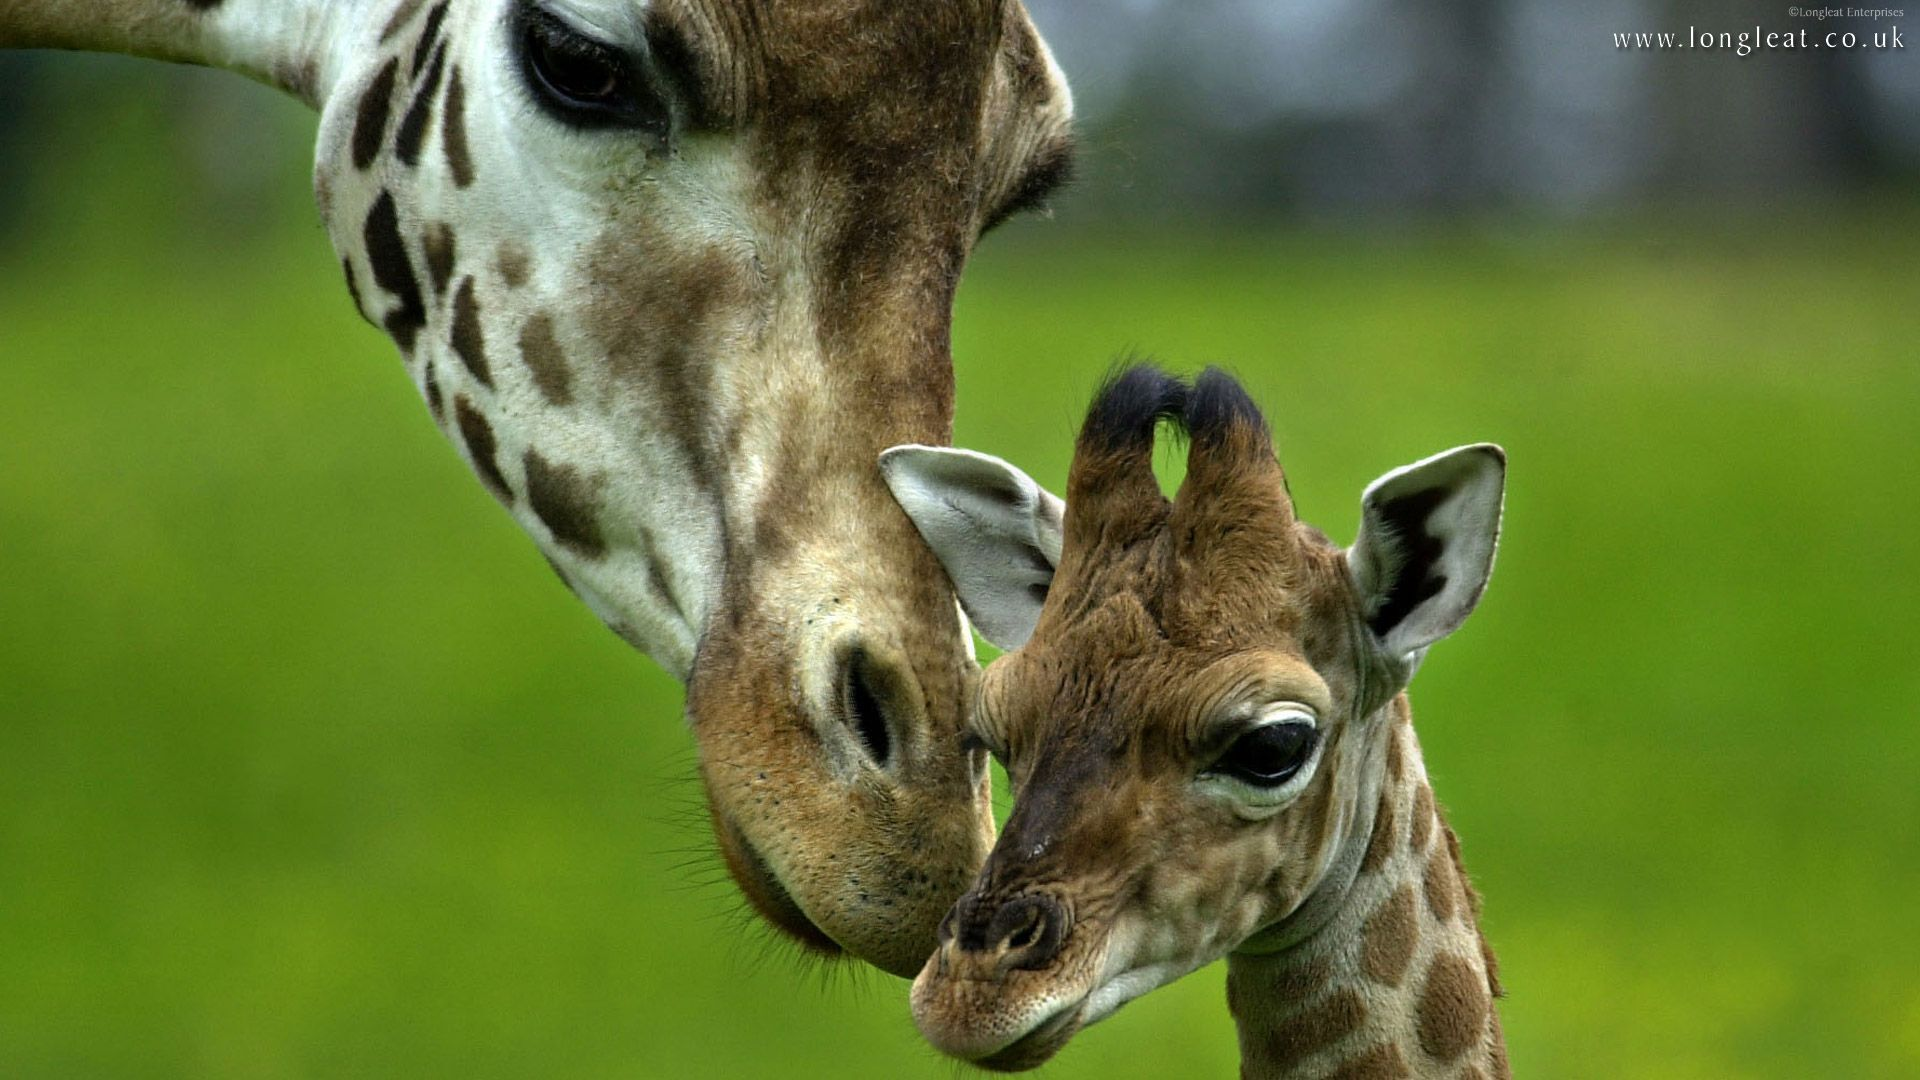 Funny Giraffe Pictures Wallpapers For Desktop